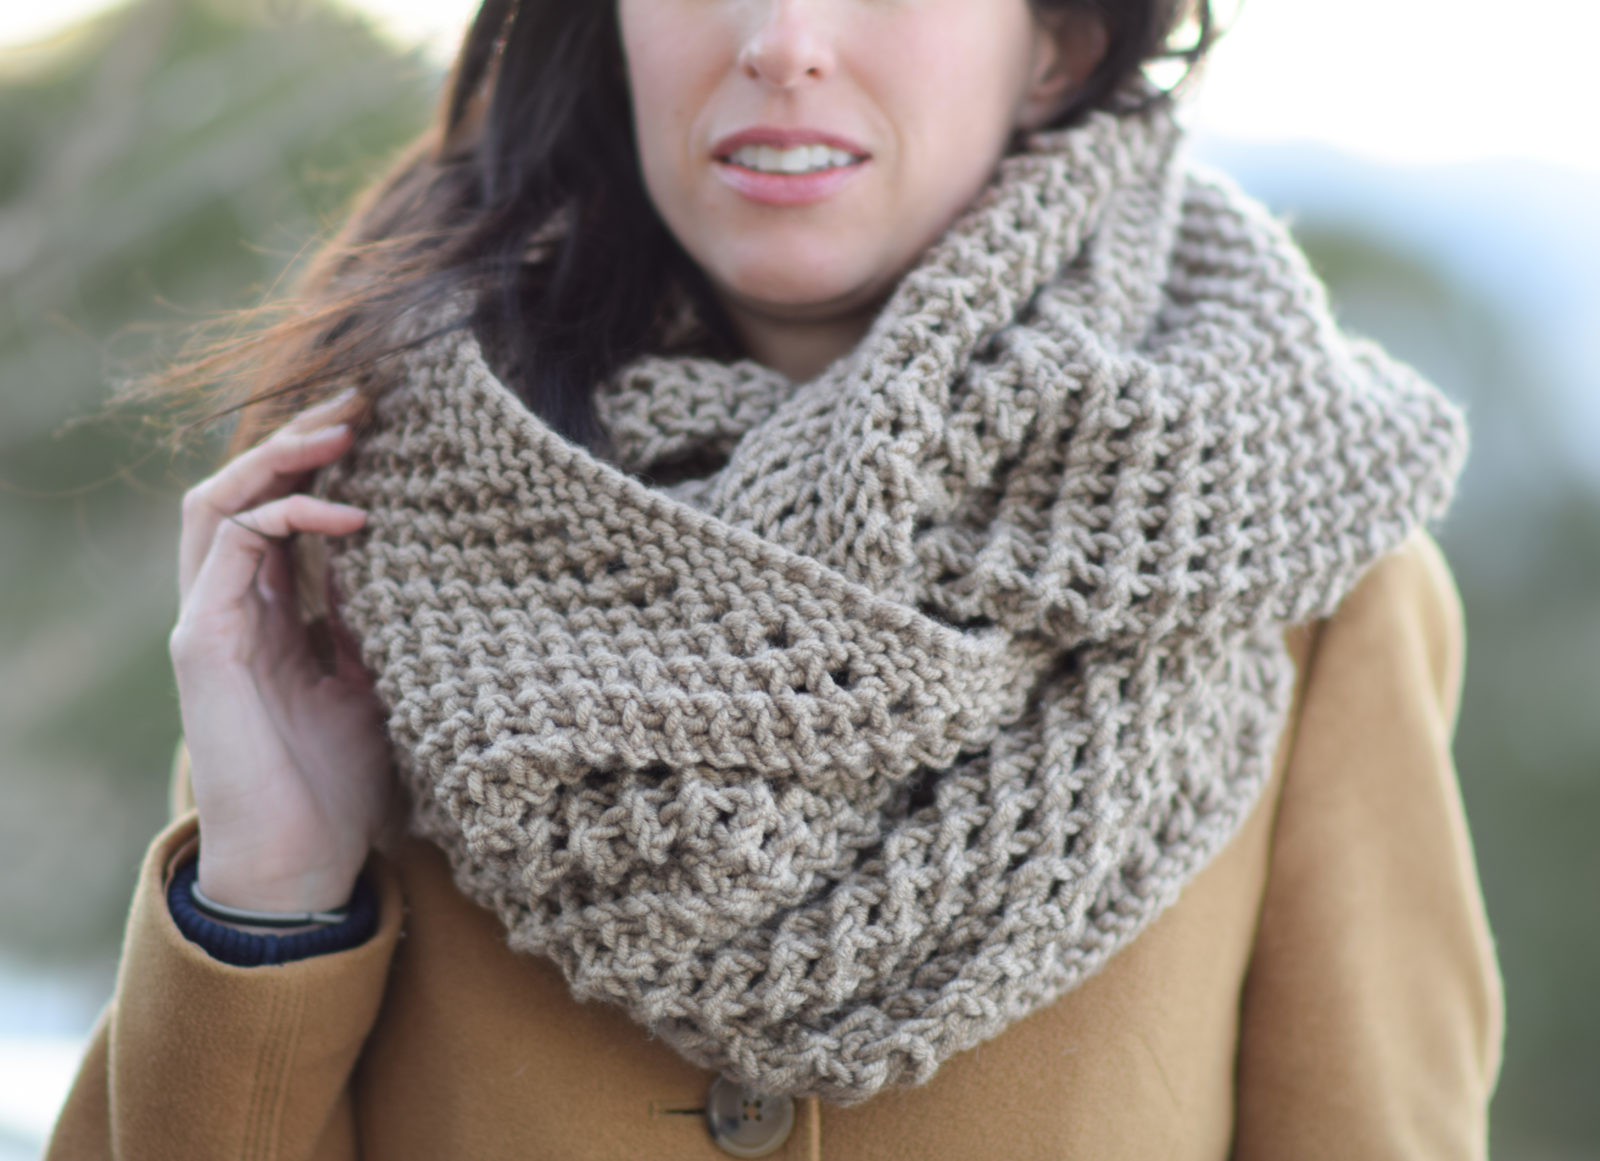 Free Scarf Knitting Patterns Awesome the Traveler Knit Infinicowl Scarf Pattern – Mama In A Stitch Of Innovative 40 Pics Free Scarf Knitting Patterns